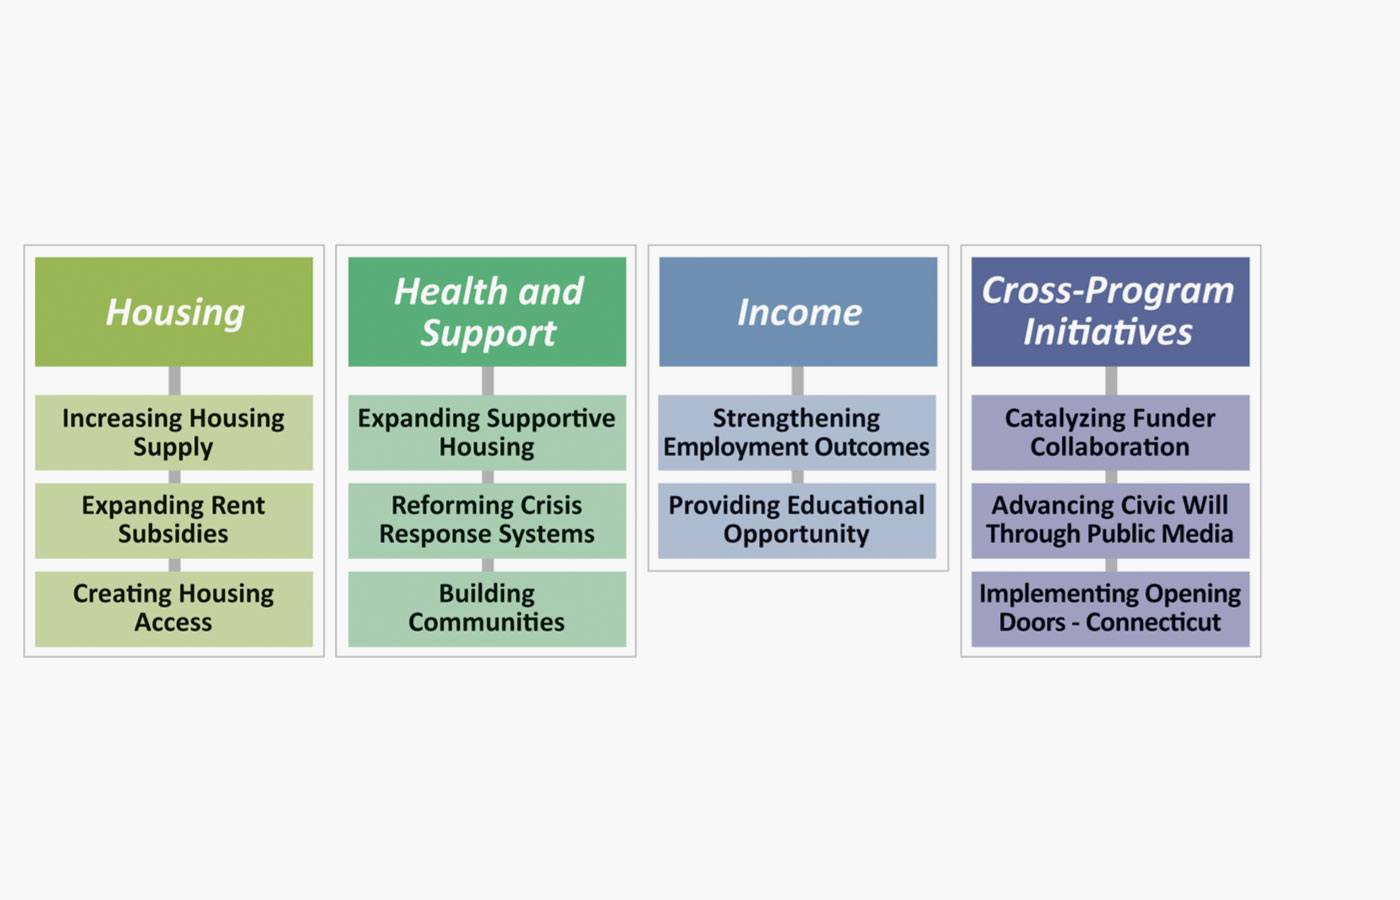 Trust's three primary program areas: Housing, Health and Support, and Income